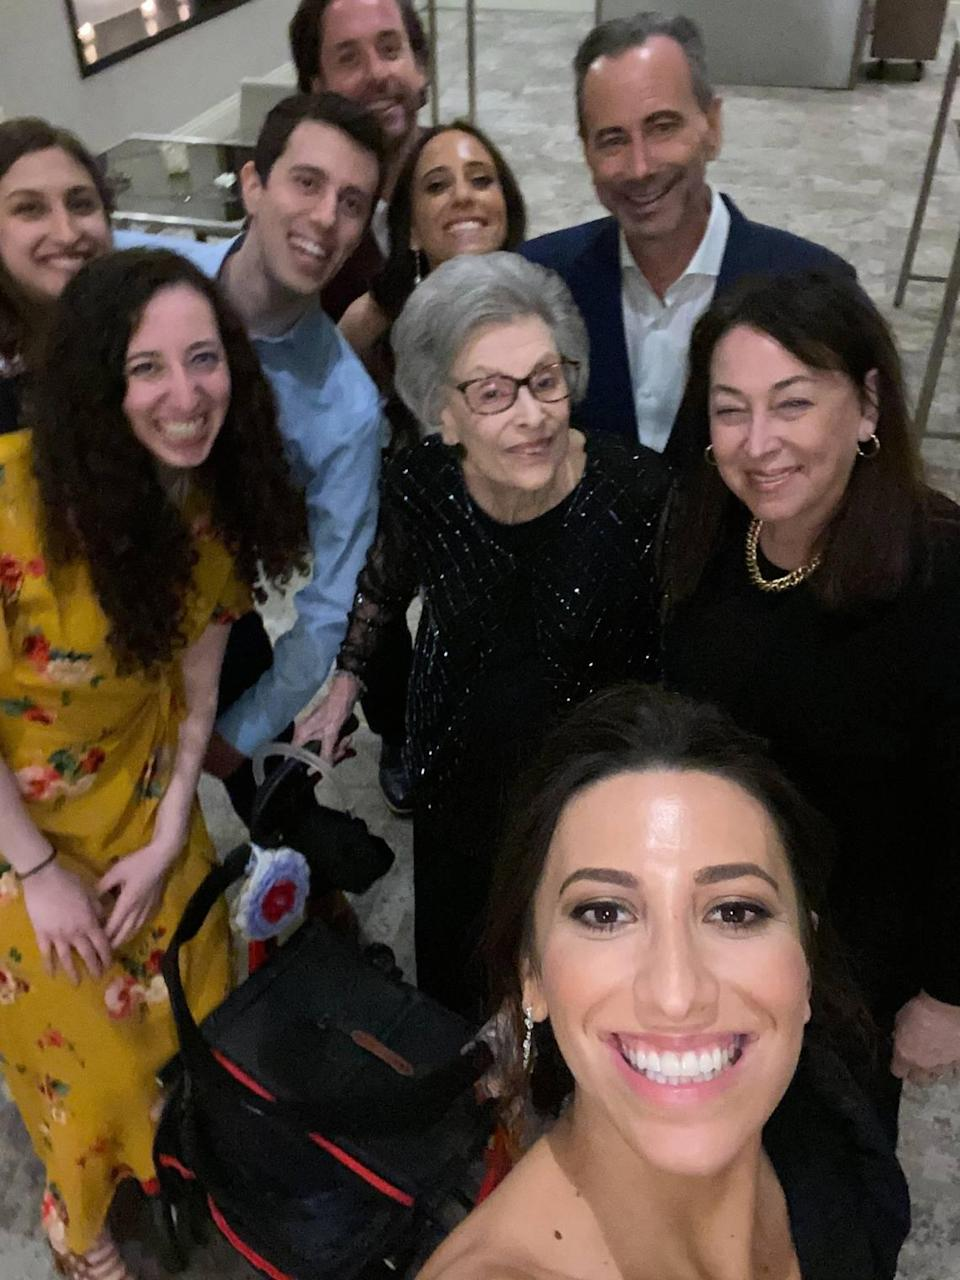 Lily Aaronson (center) with her two children, including her son Geoffrey (top right) and her grandchildren at her granddaughter's wedding on Feb. 29, 2020, at the Eden Roc hotel in Miami Beach.